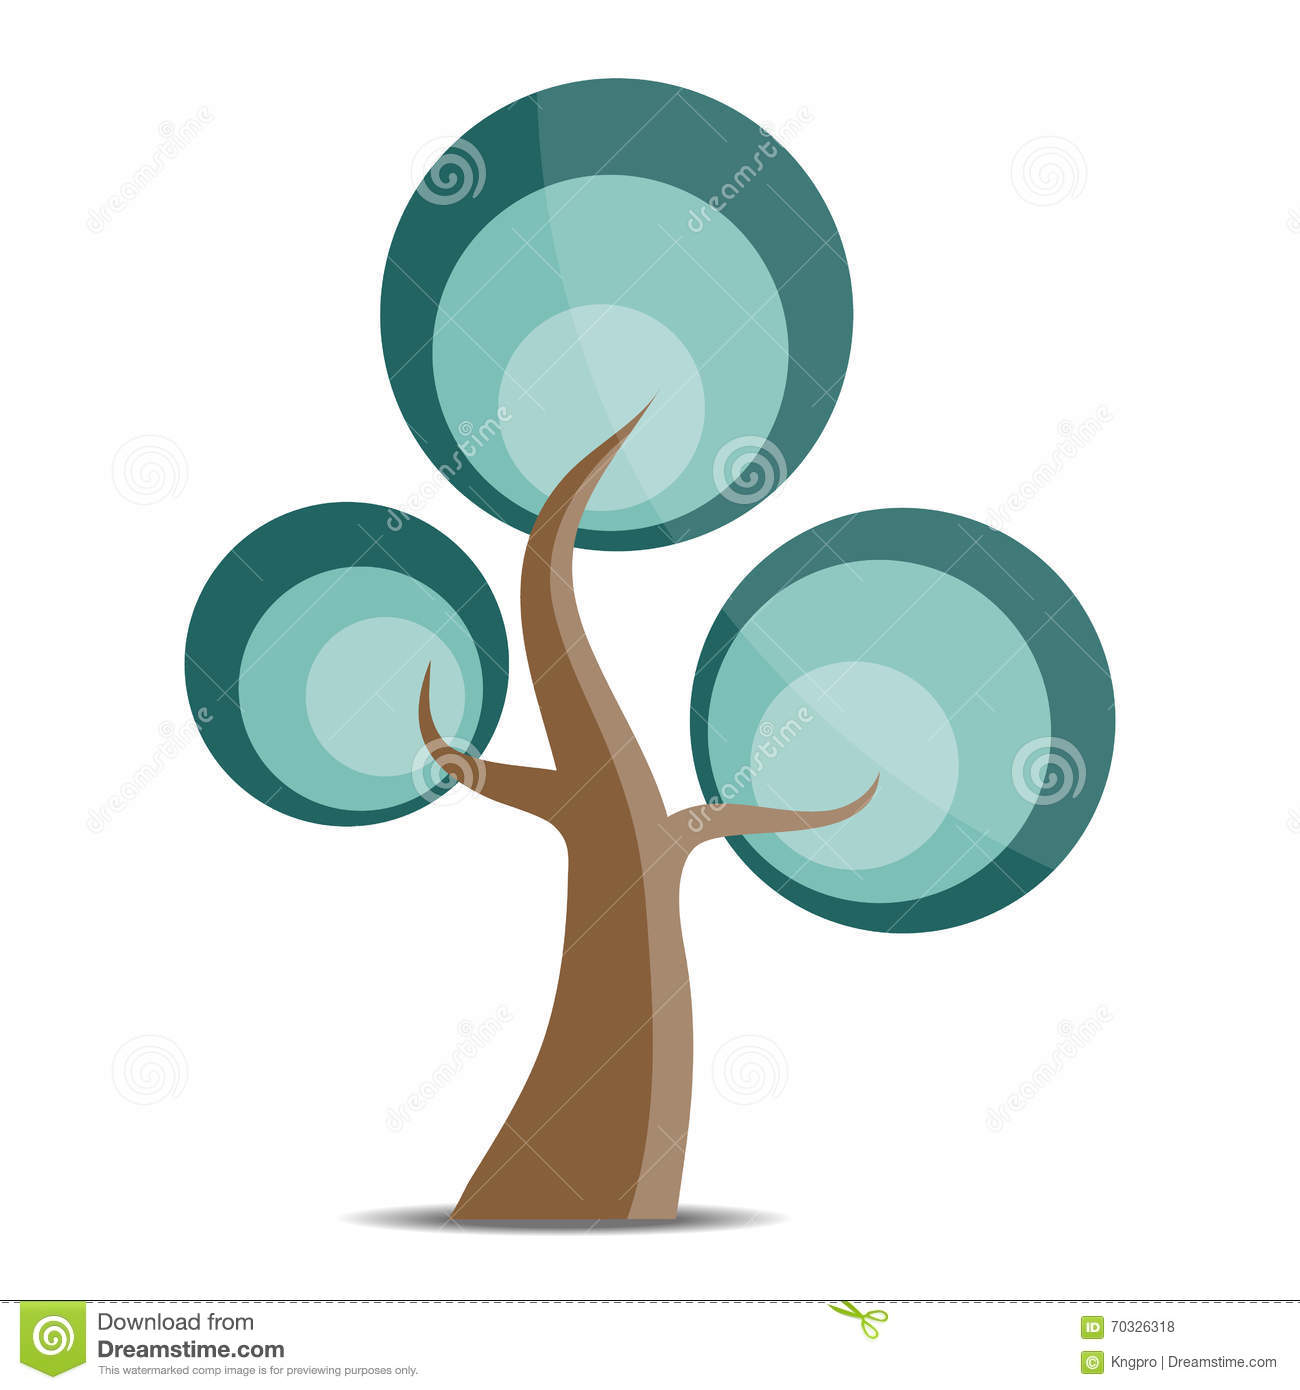 Vector Tree Logo Stock Vector - Image: 70326318